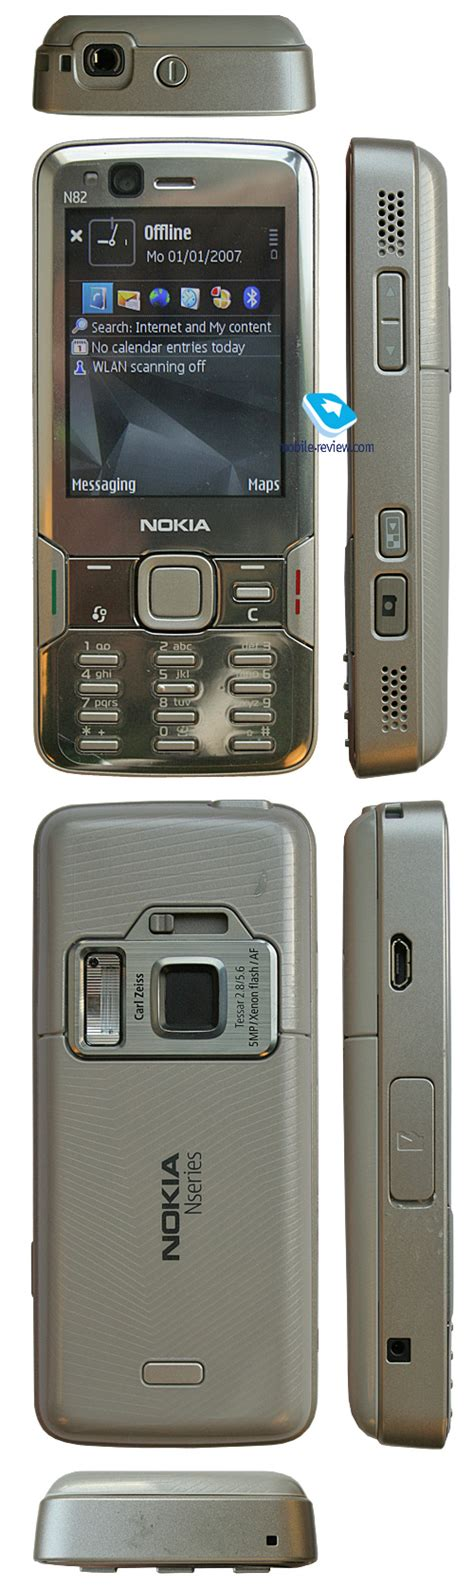 themes nokia n82 nokia n82 and sony ericsson k850i a close look nseries